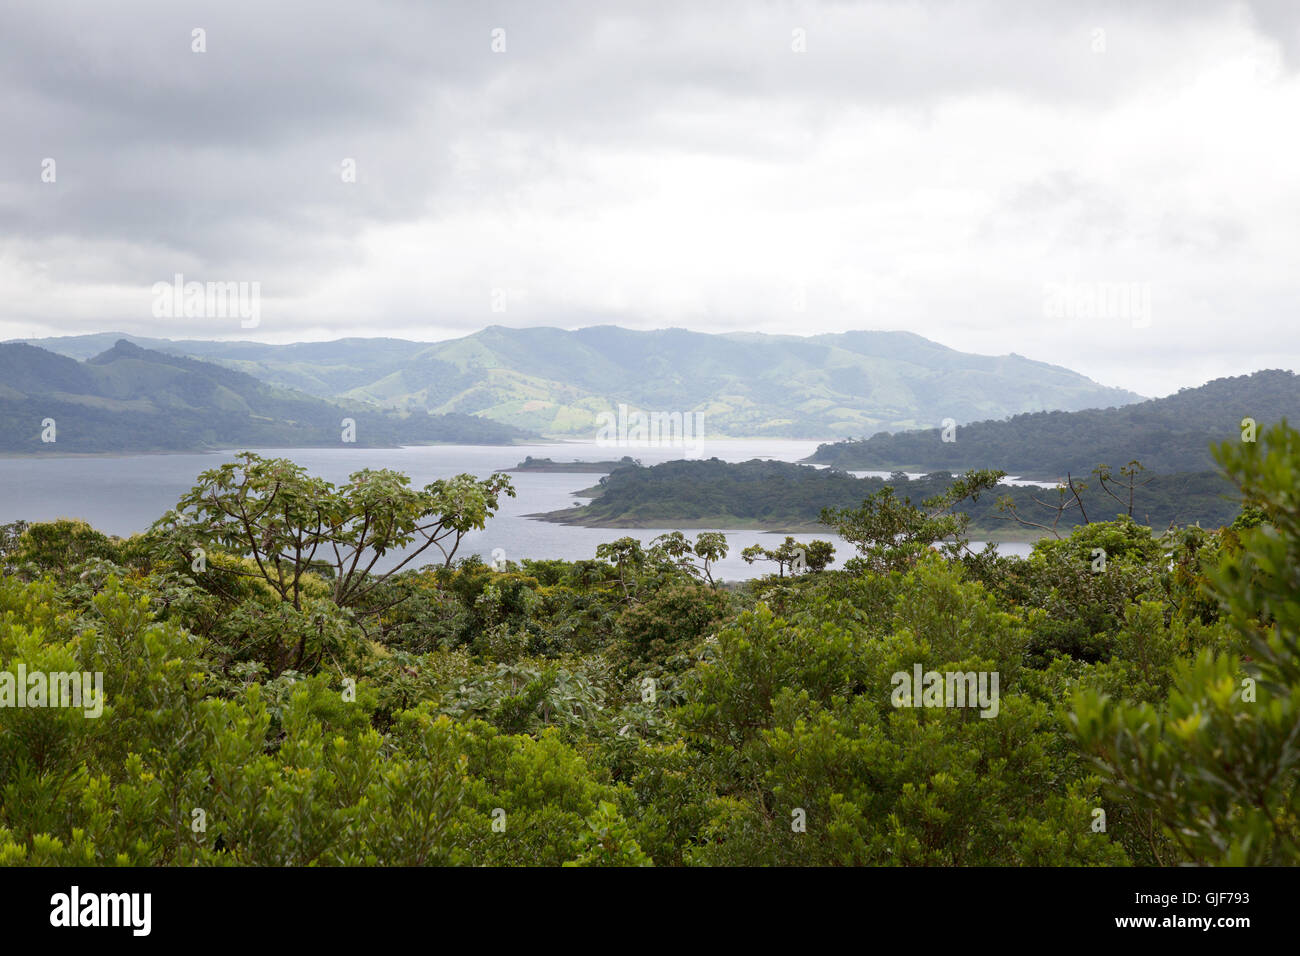 The rainforest landscape around Arenal Lake, Arenal, Costa Rica, Central America - Stock Image